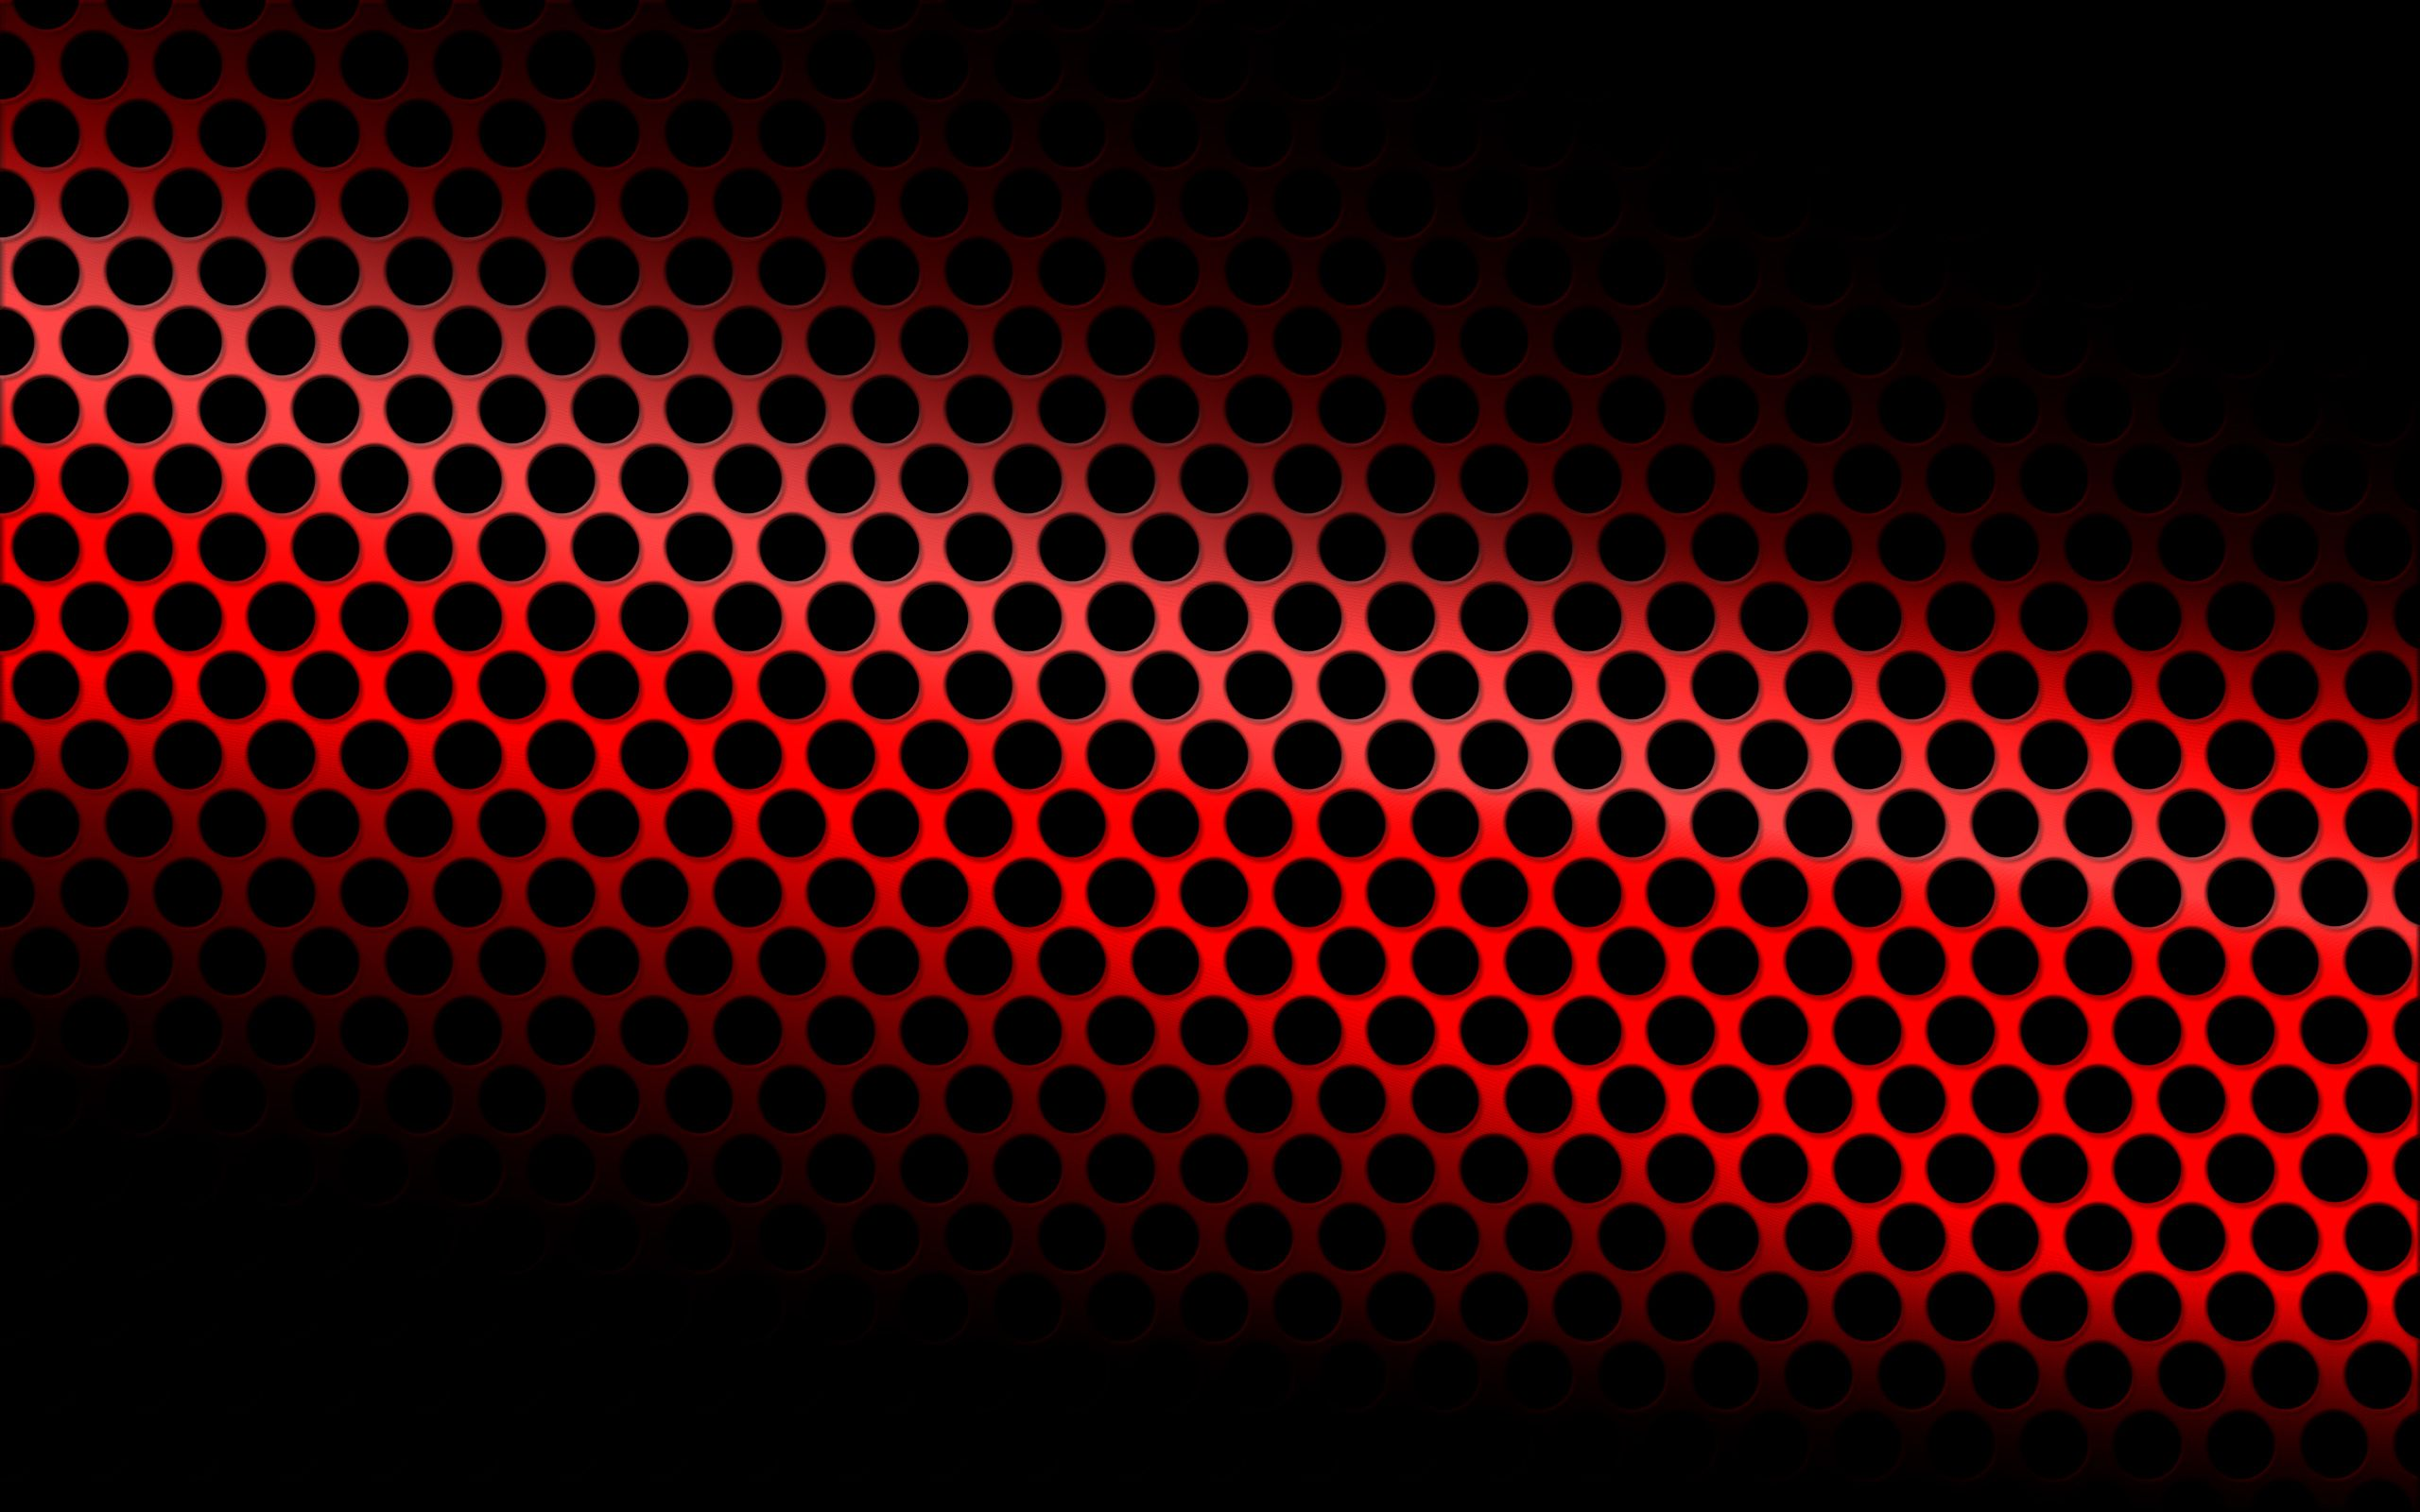 Wallpaper iphone black red - Black And Red Wallpapers Hd Hd Wallpapers Backgrounds Images